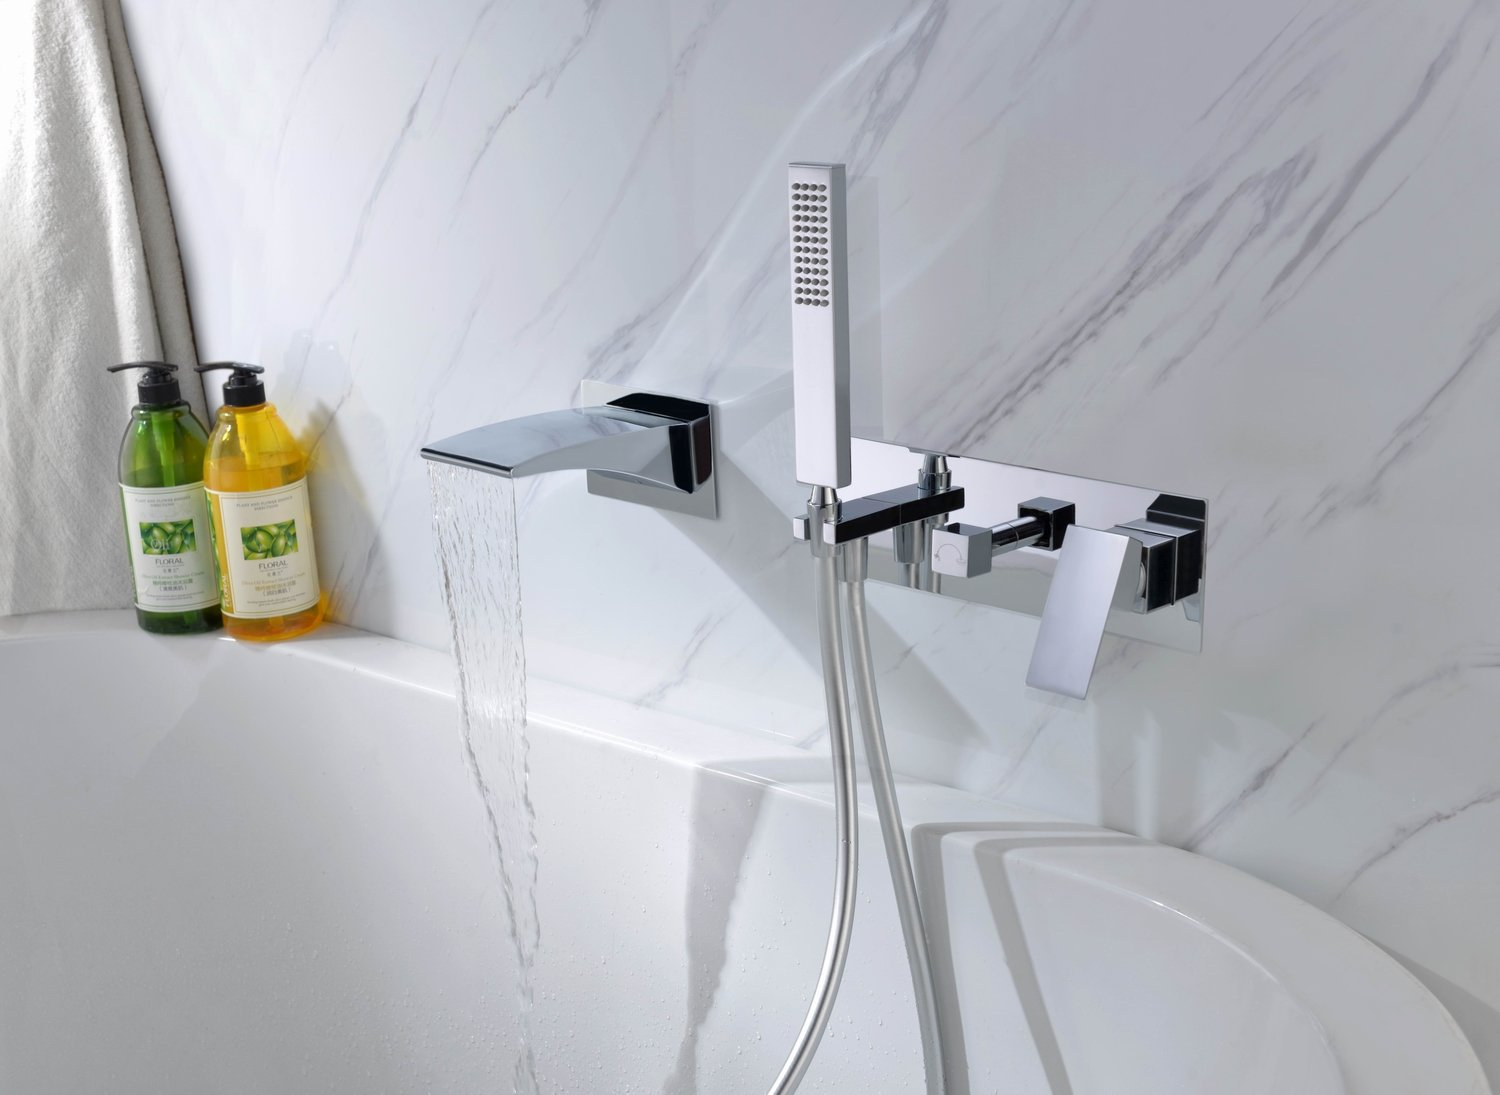 Sumerain Wall Mount Tub Faucets Waterfall Tub Filler Spout With